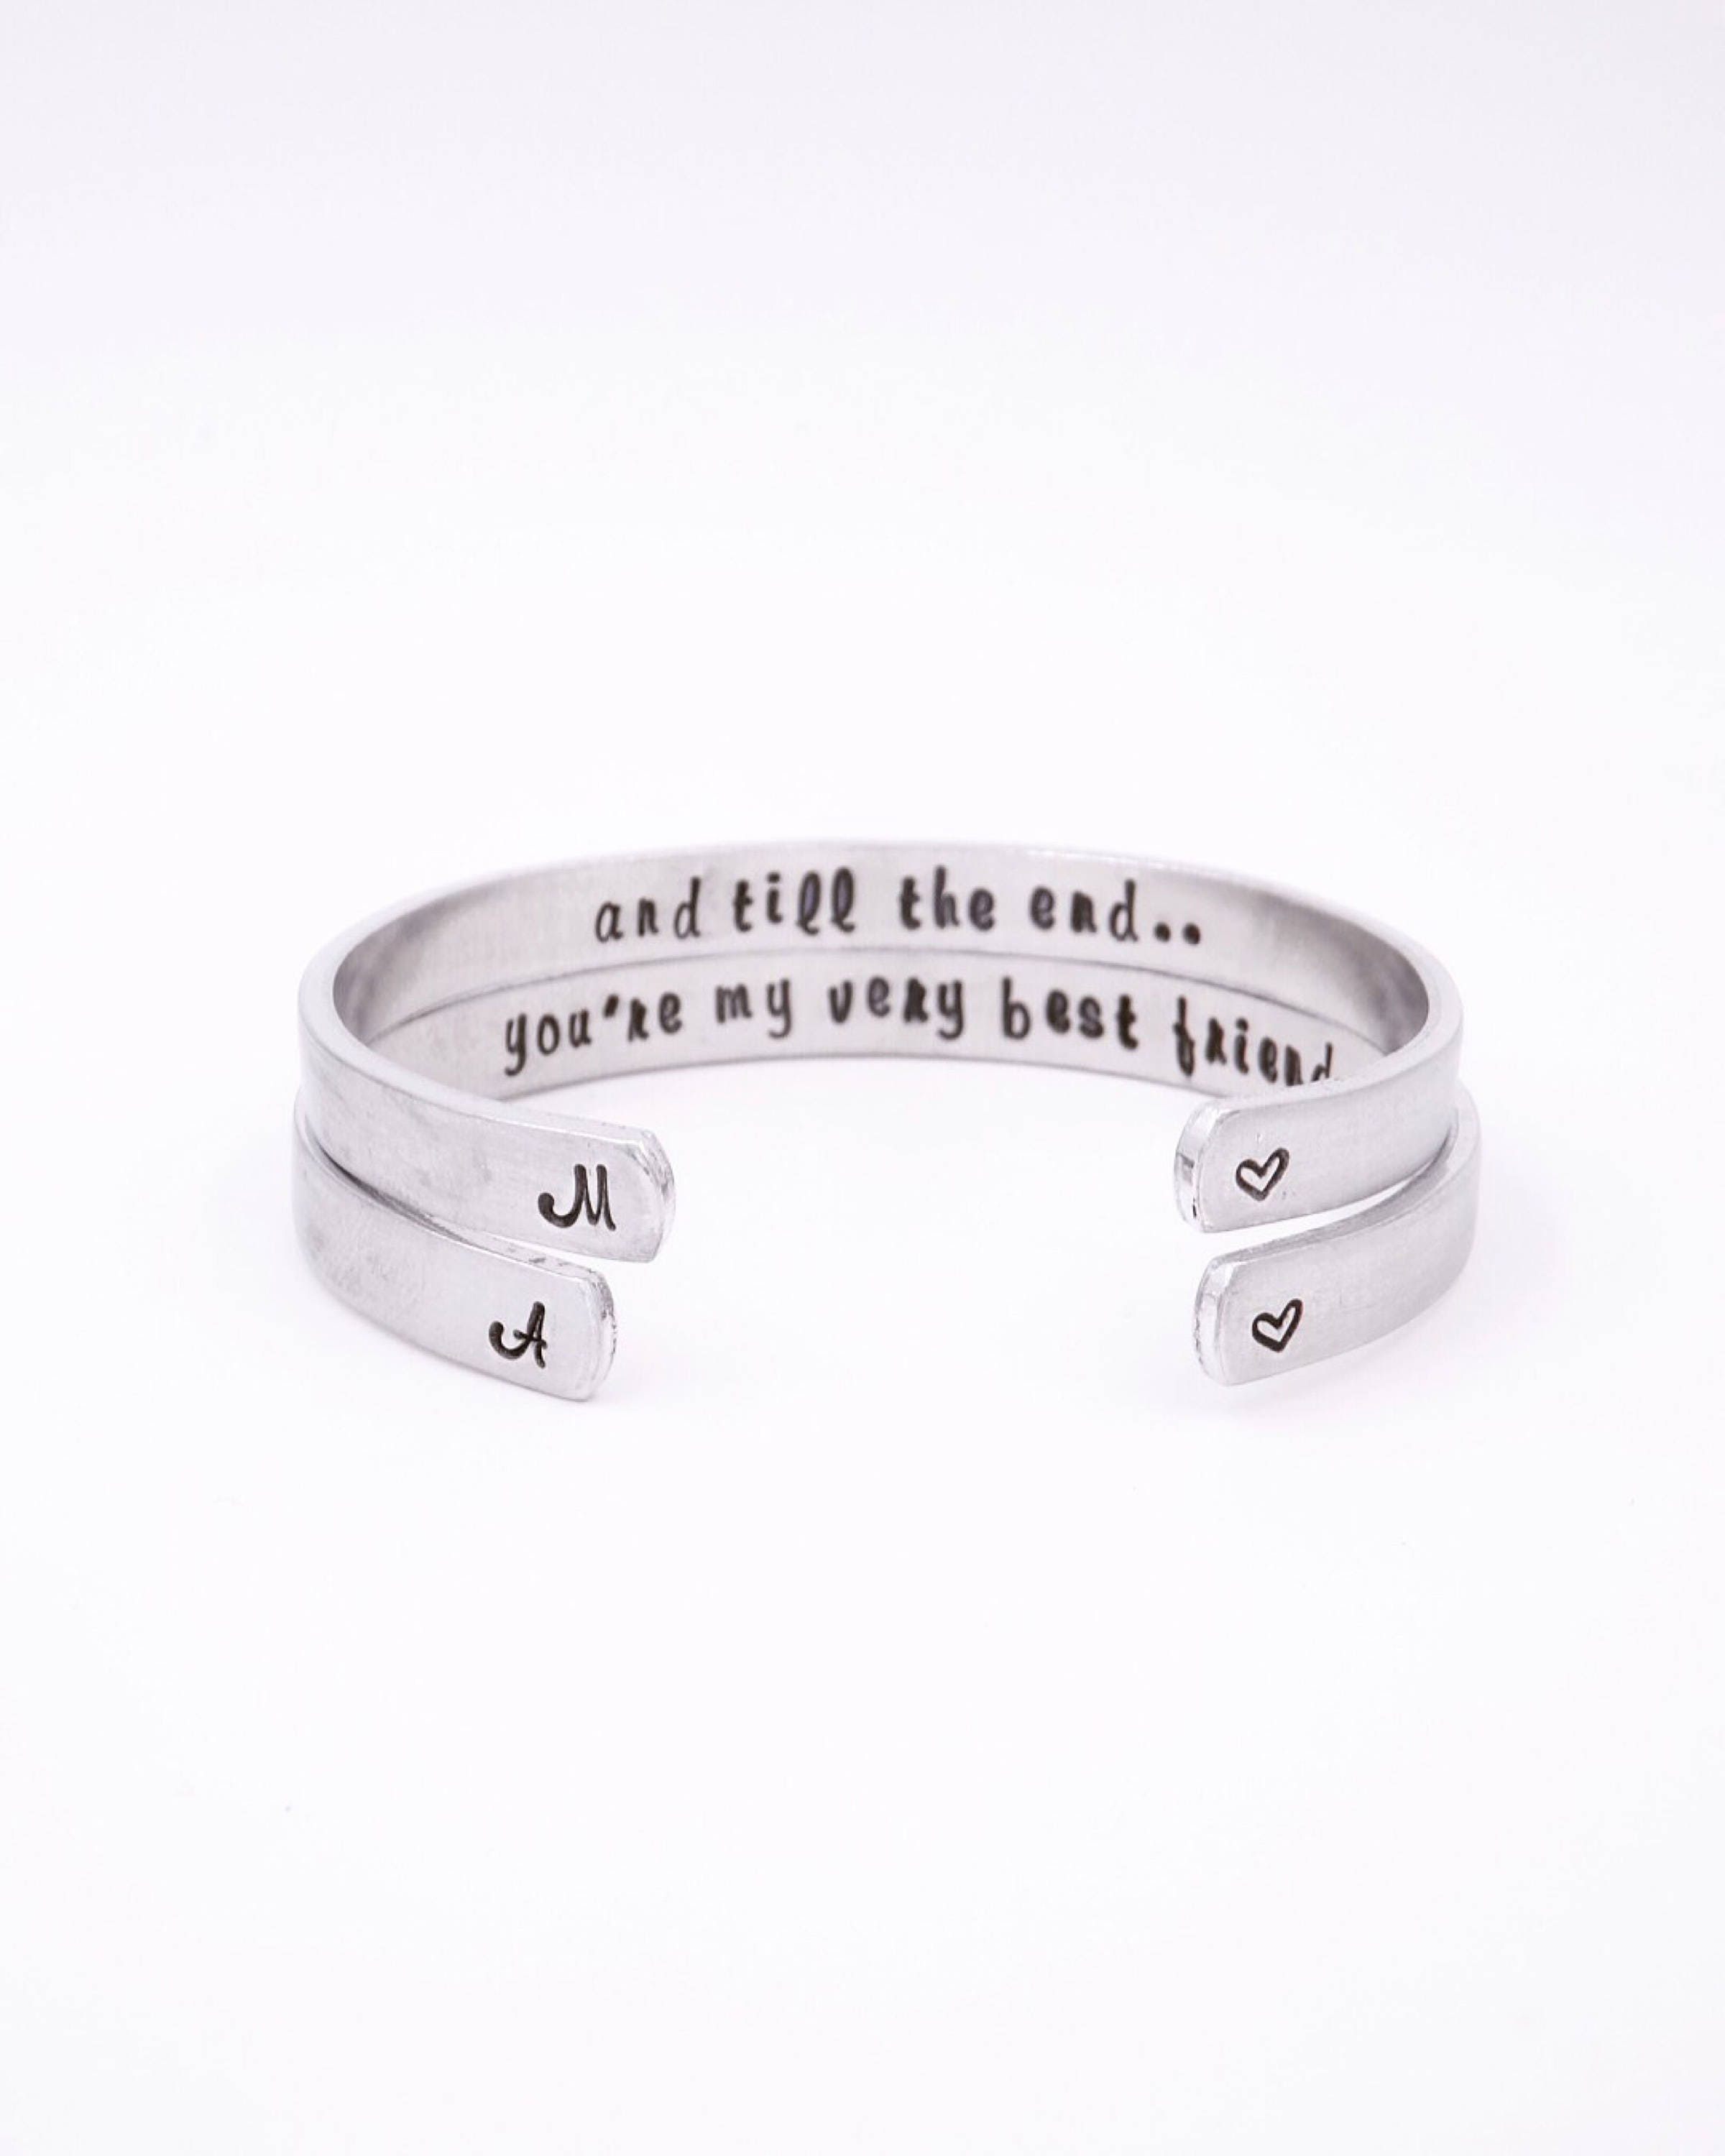 9d7ad6df6ae87 Matching best friend bracelet - Youre my very best friend - Gifts for best  friend - Best friend gift - Best friend intial bracelet